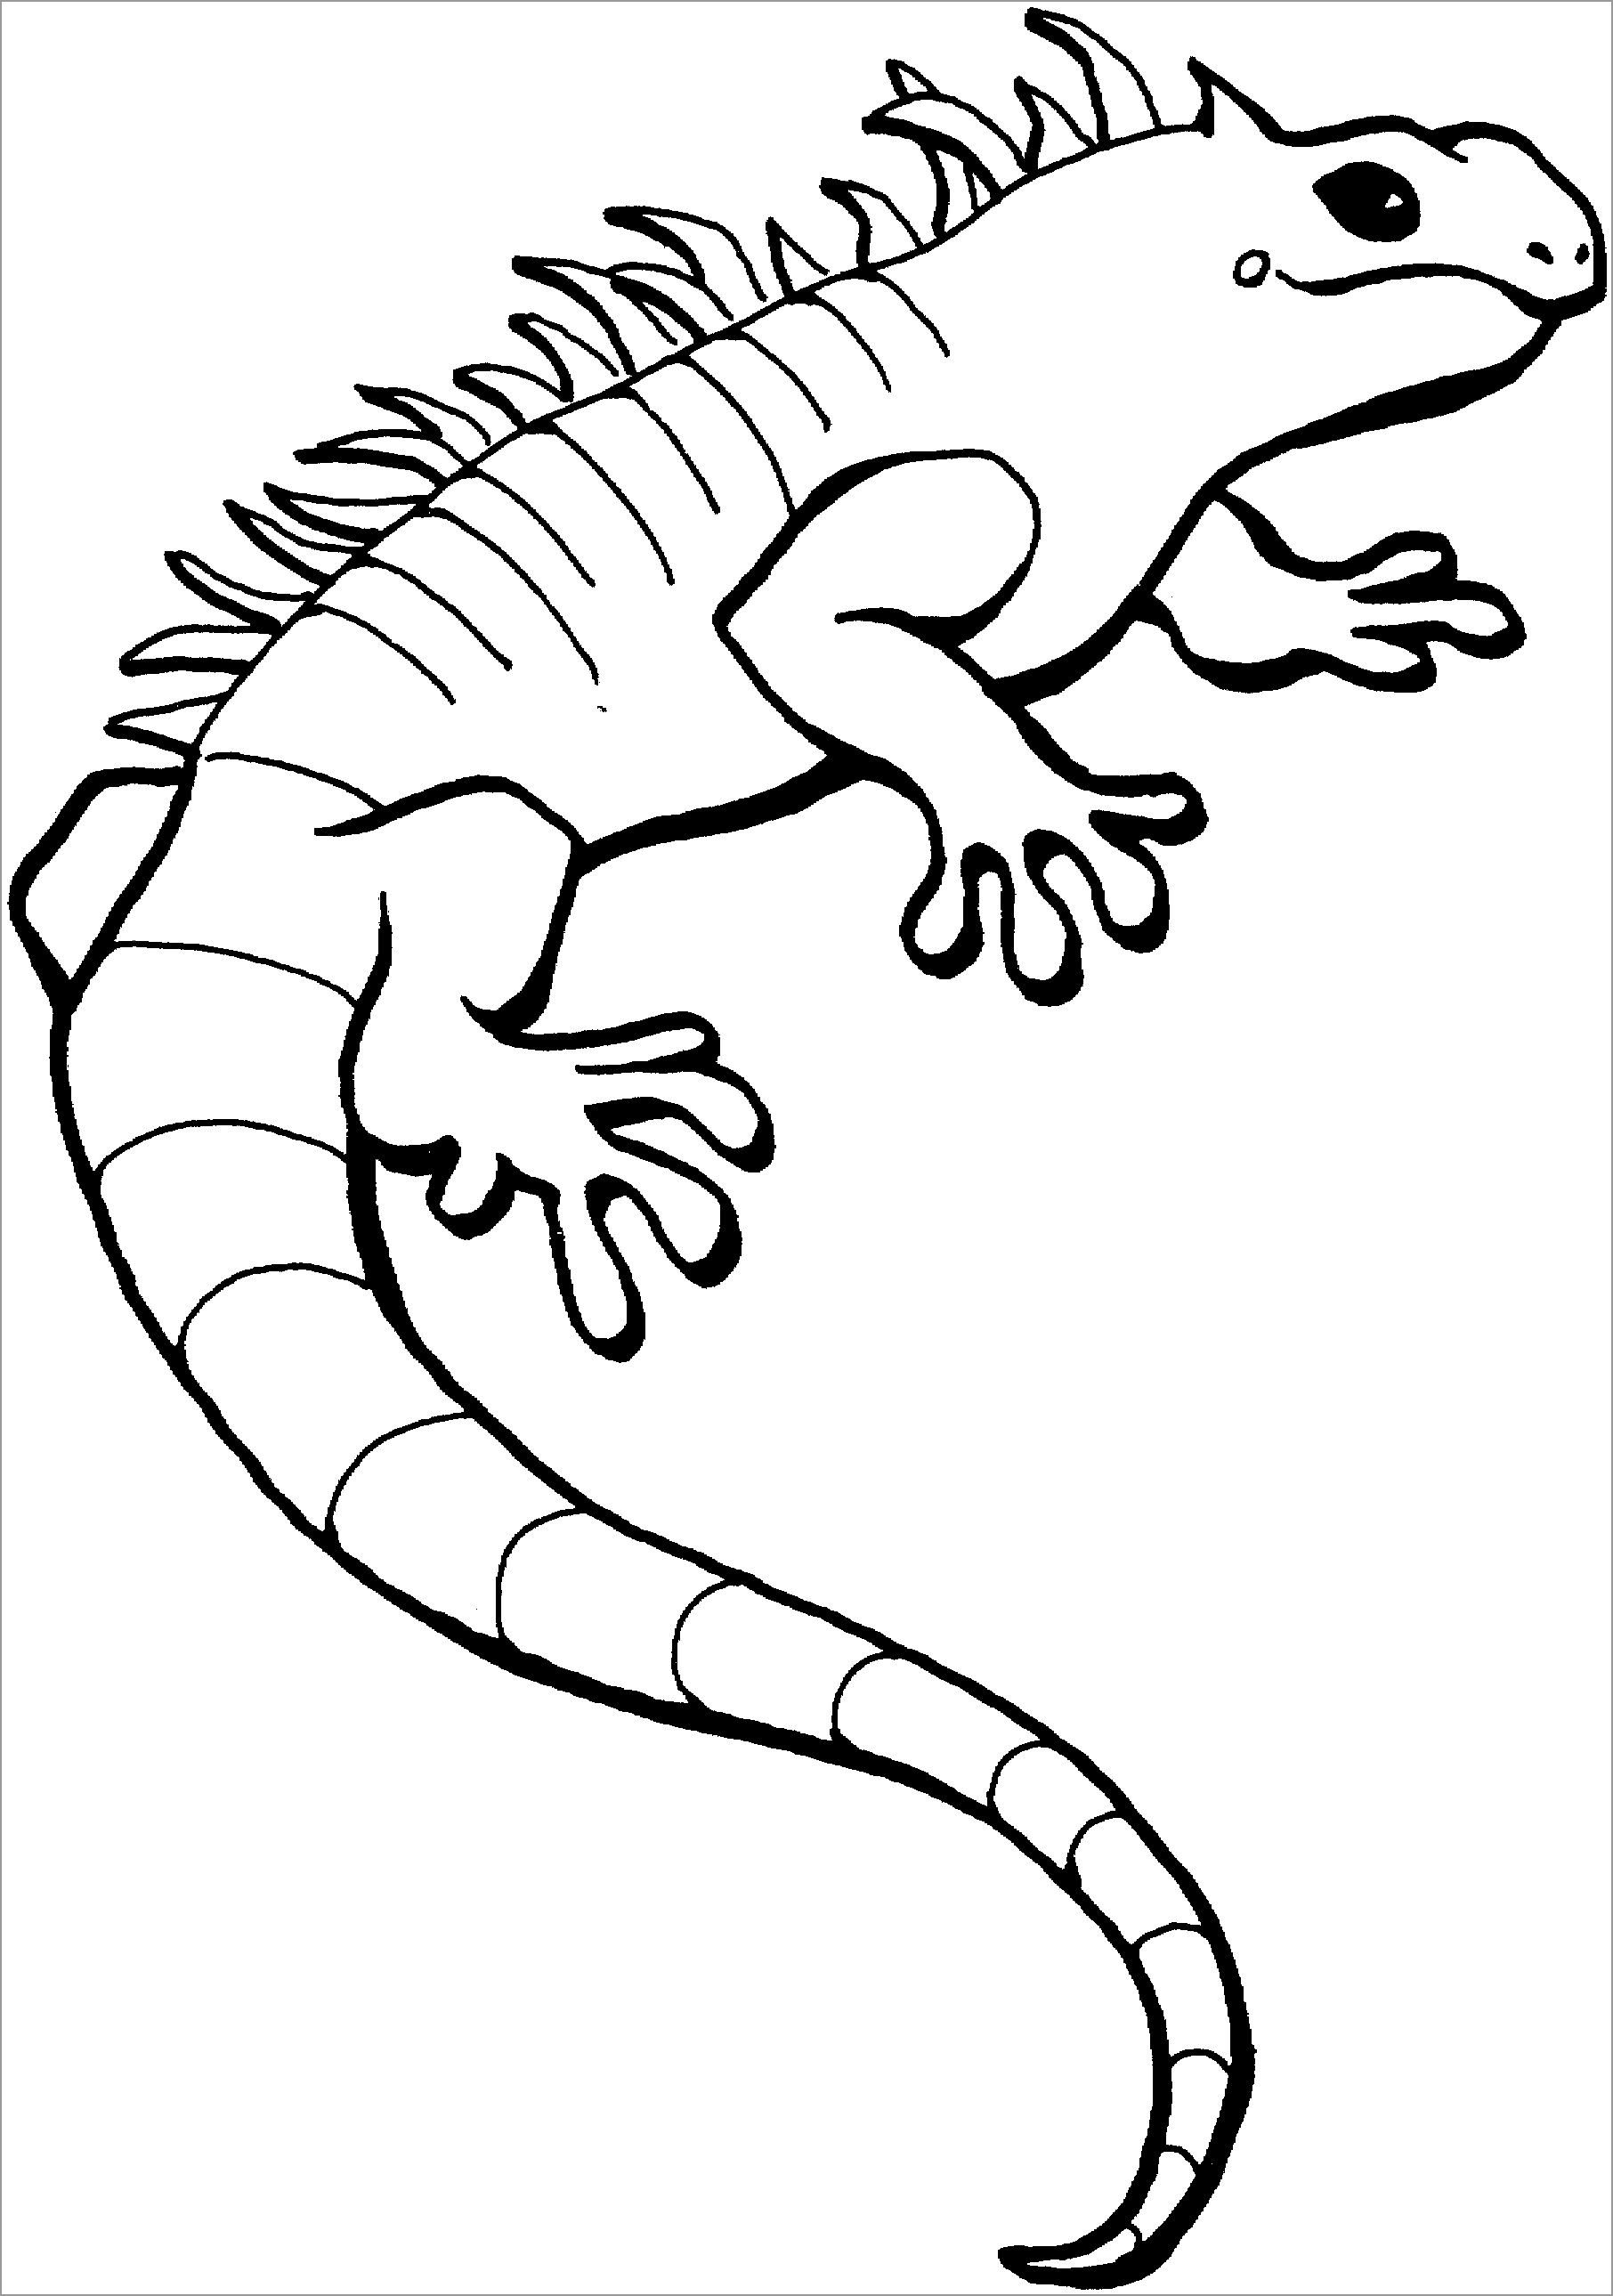 Lizard Coloring Sheet : lizard, coloring, sheet, Coloring, Lizards, ColoringBay